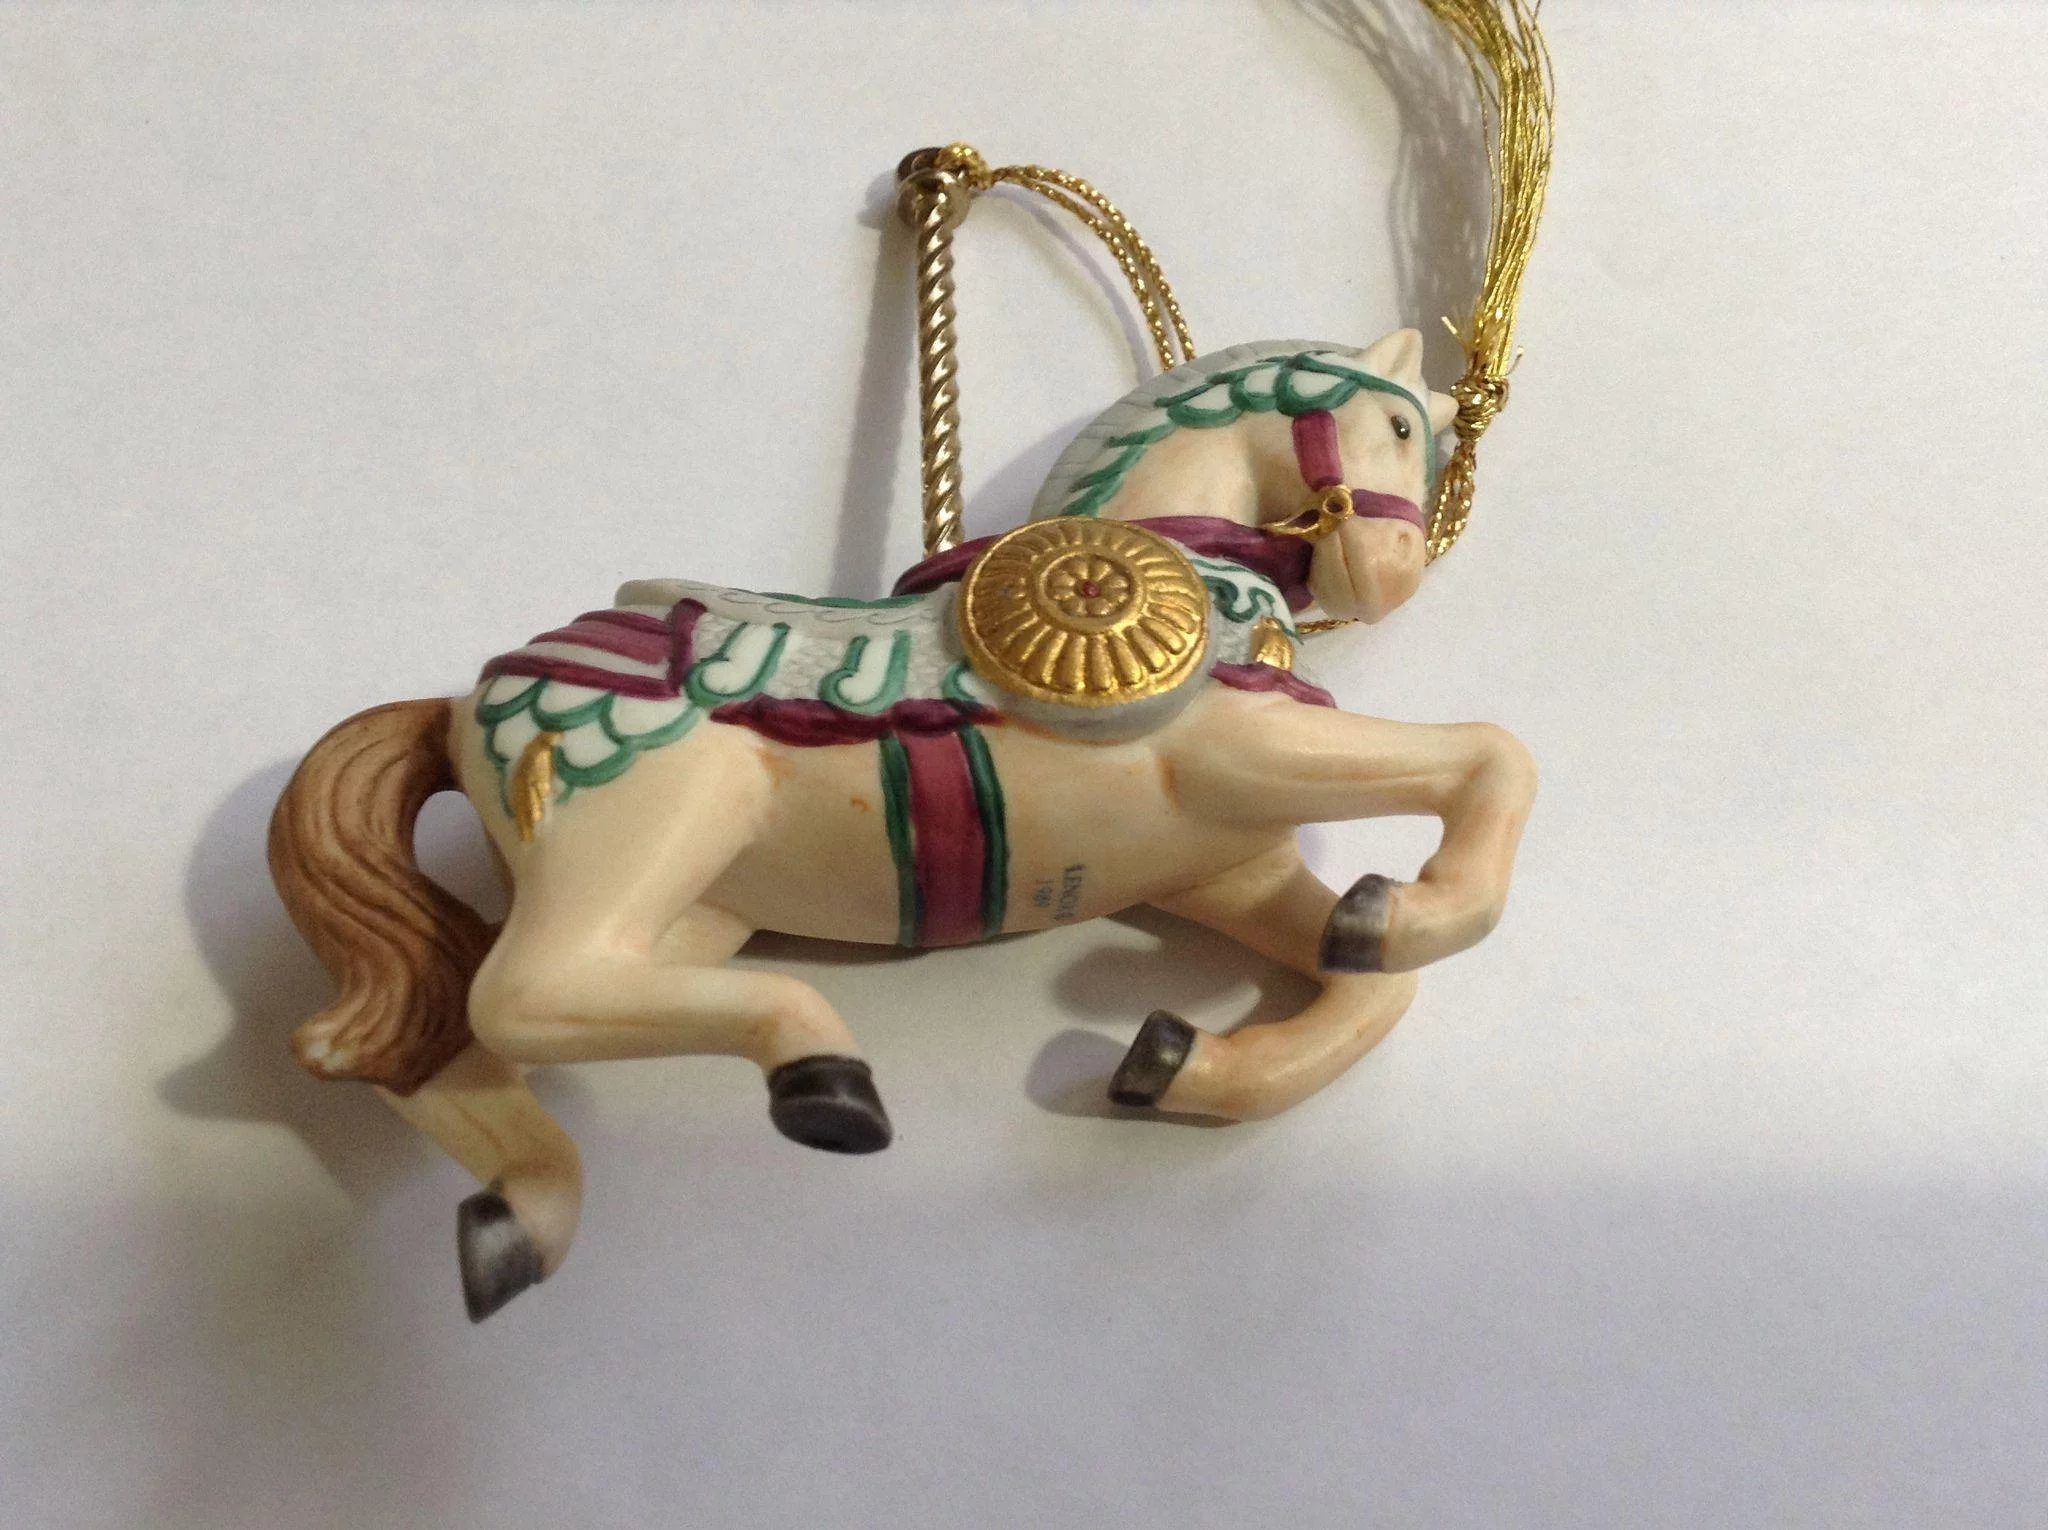 Lenox 1989 Carousel Medieval Horse Christmas Tree Ornament